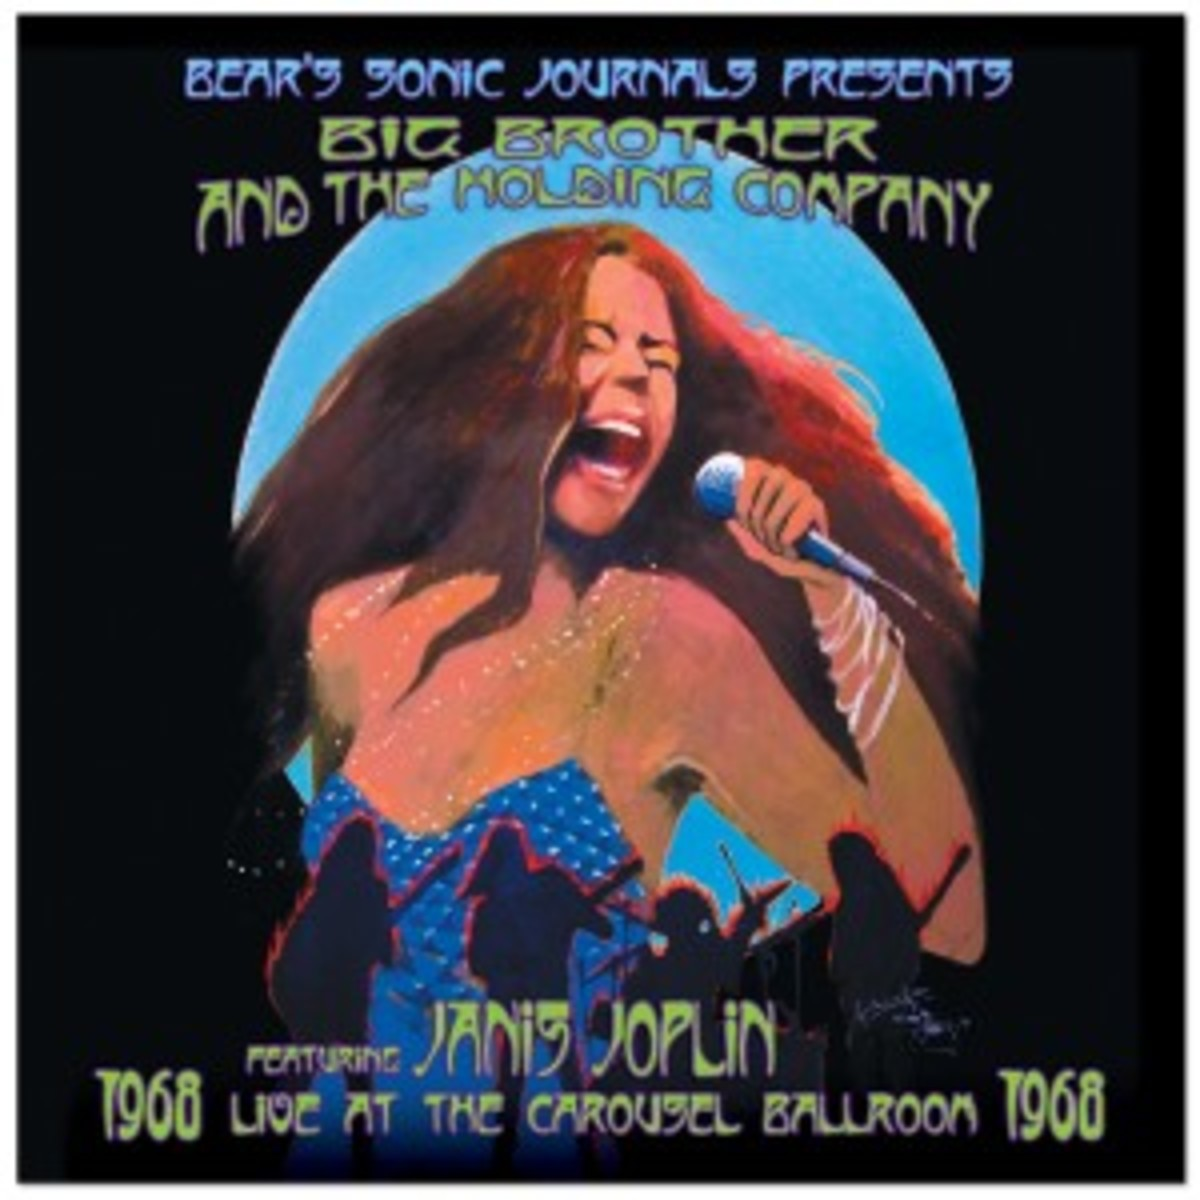 Big Brother and The Holding Company With Janis Joplin Live at the Carousel Ballroom 1968